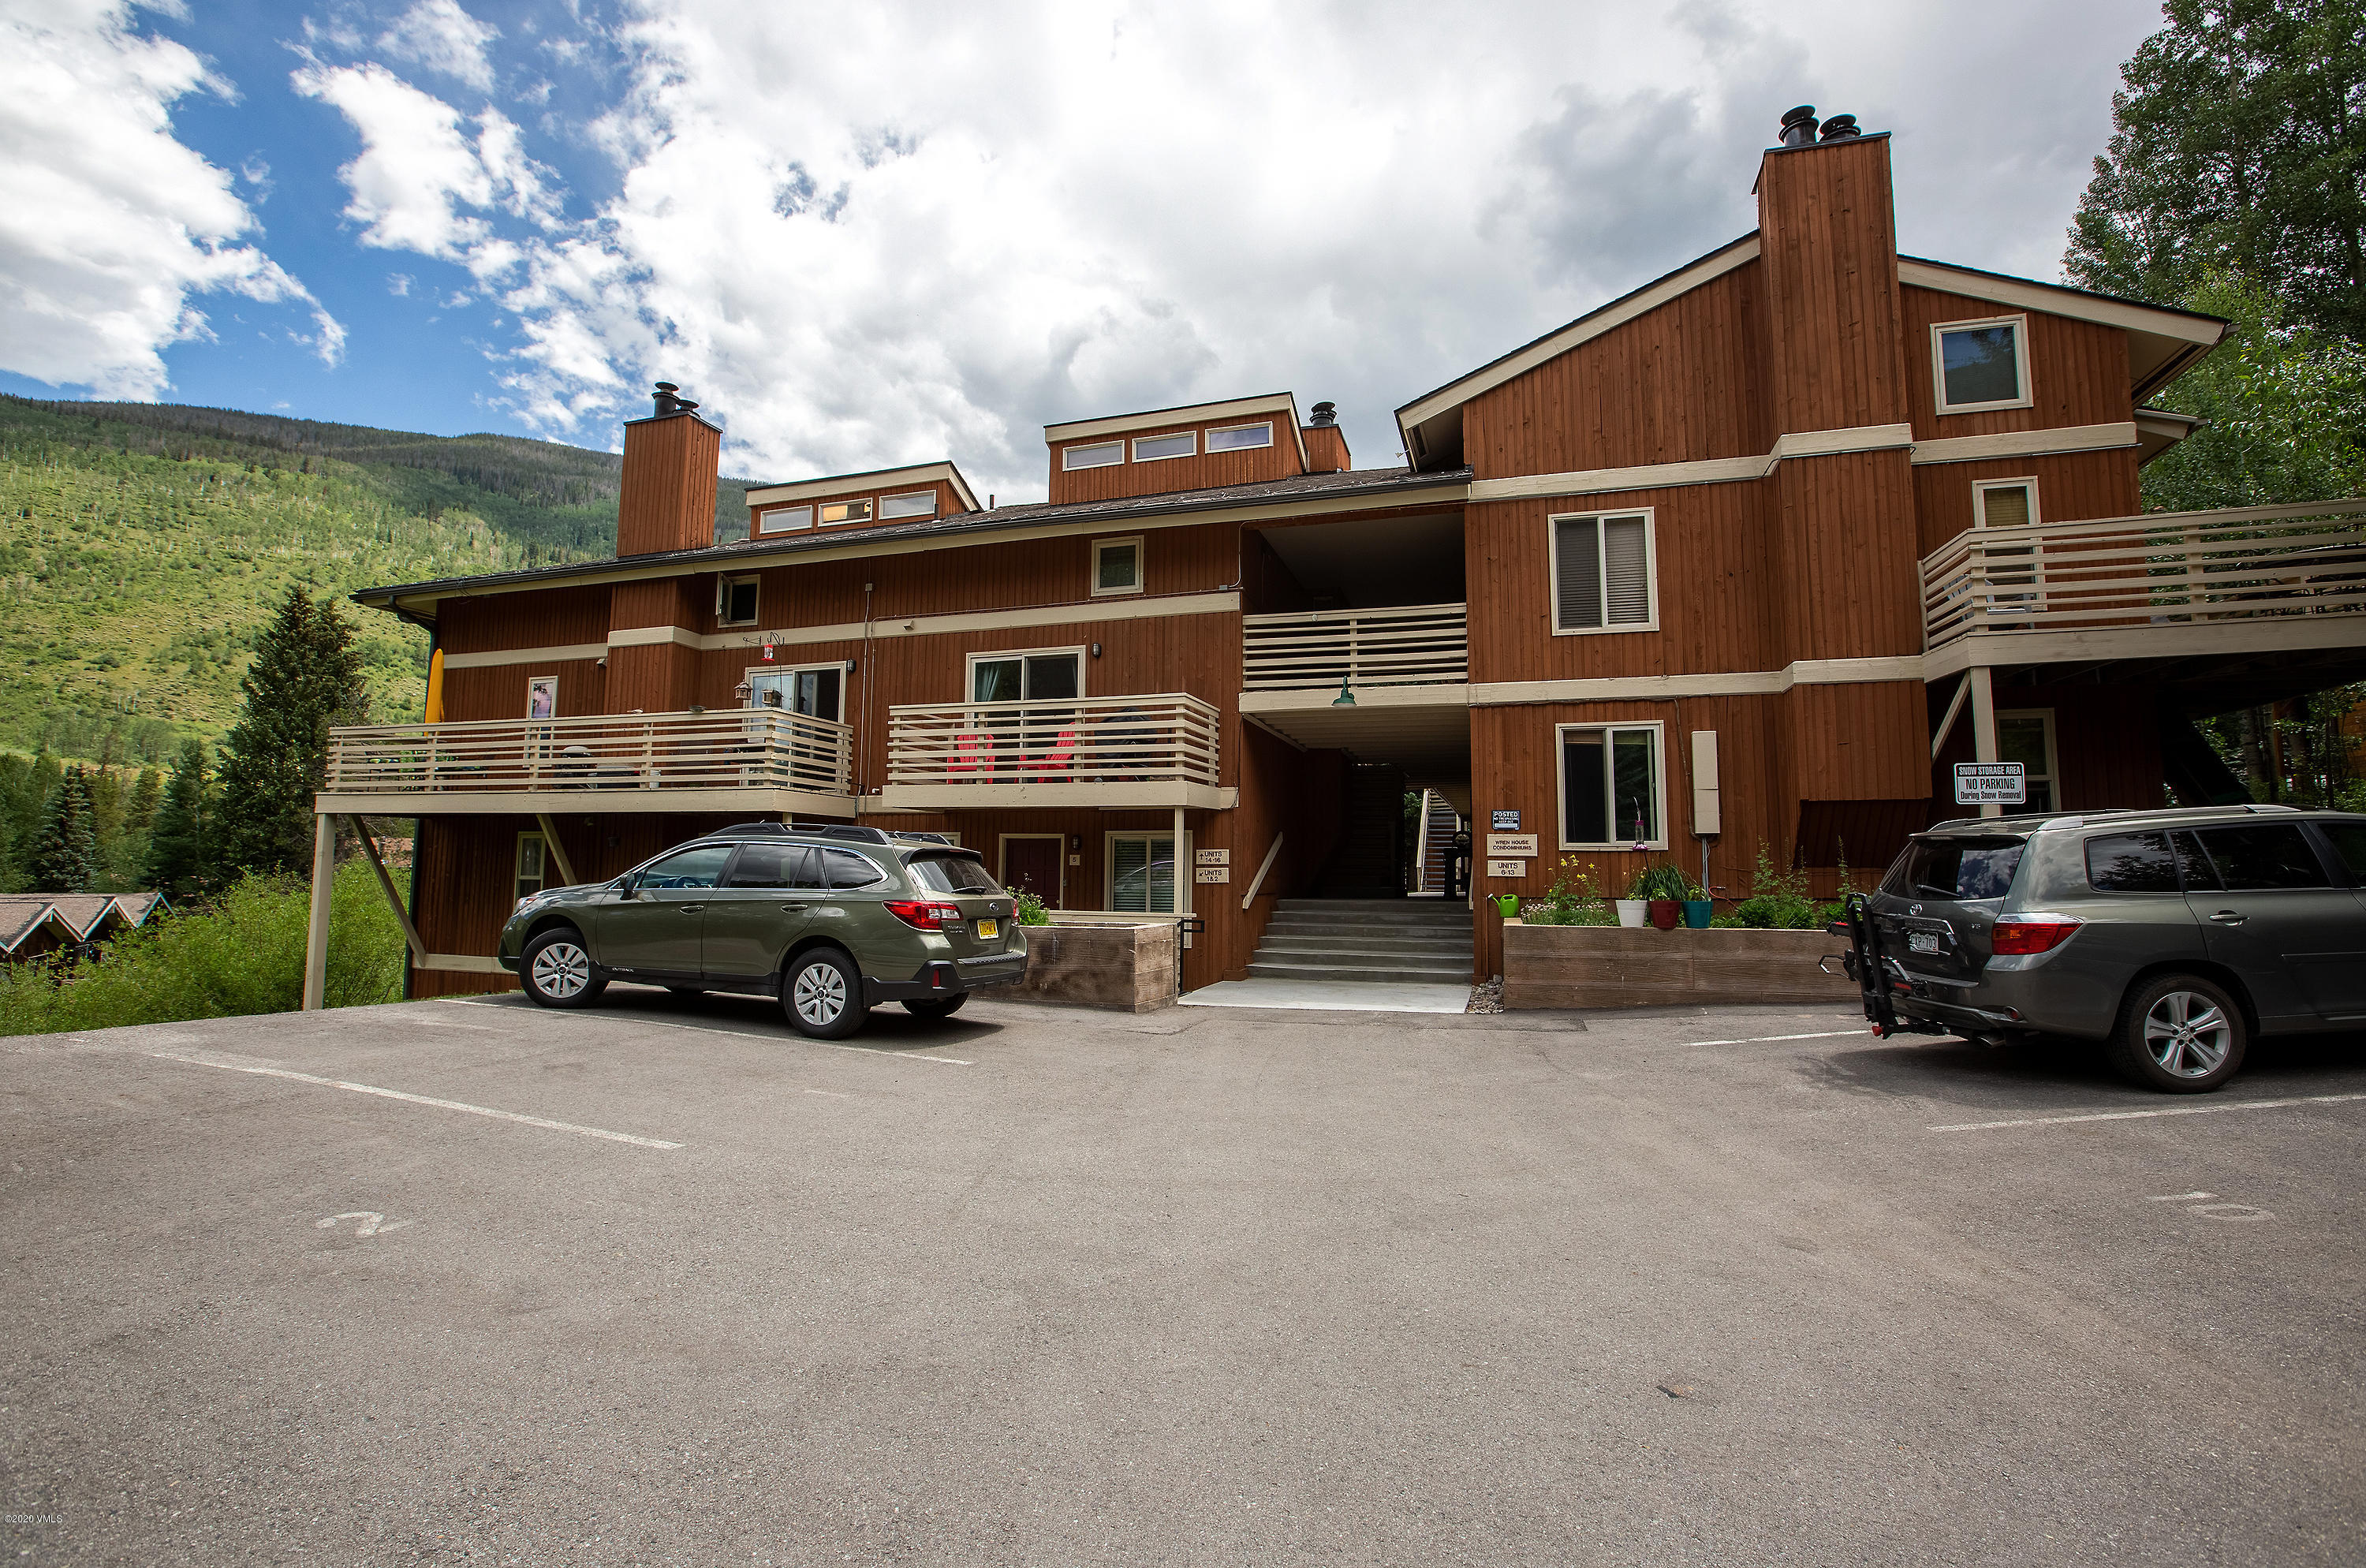 Full remodel summer 2020 - Perfect starter home or rental in Vail, on the free bus route.   Private East Vail setting and quiet neighborhood.  Good storage, parking and onsite laundry located just below the residence.  Owner is Licensed Broker in the State of Colorado. VAIL INDEED restrictions apply- occupant (owner or renter) must be Eagle County employee 30+hours week. Rentals have been at $1750 plus electric.